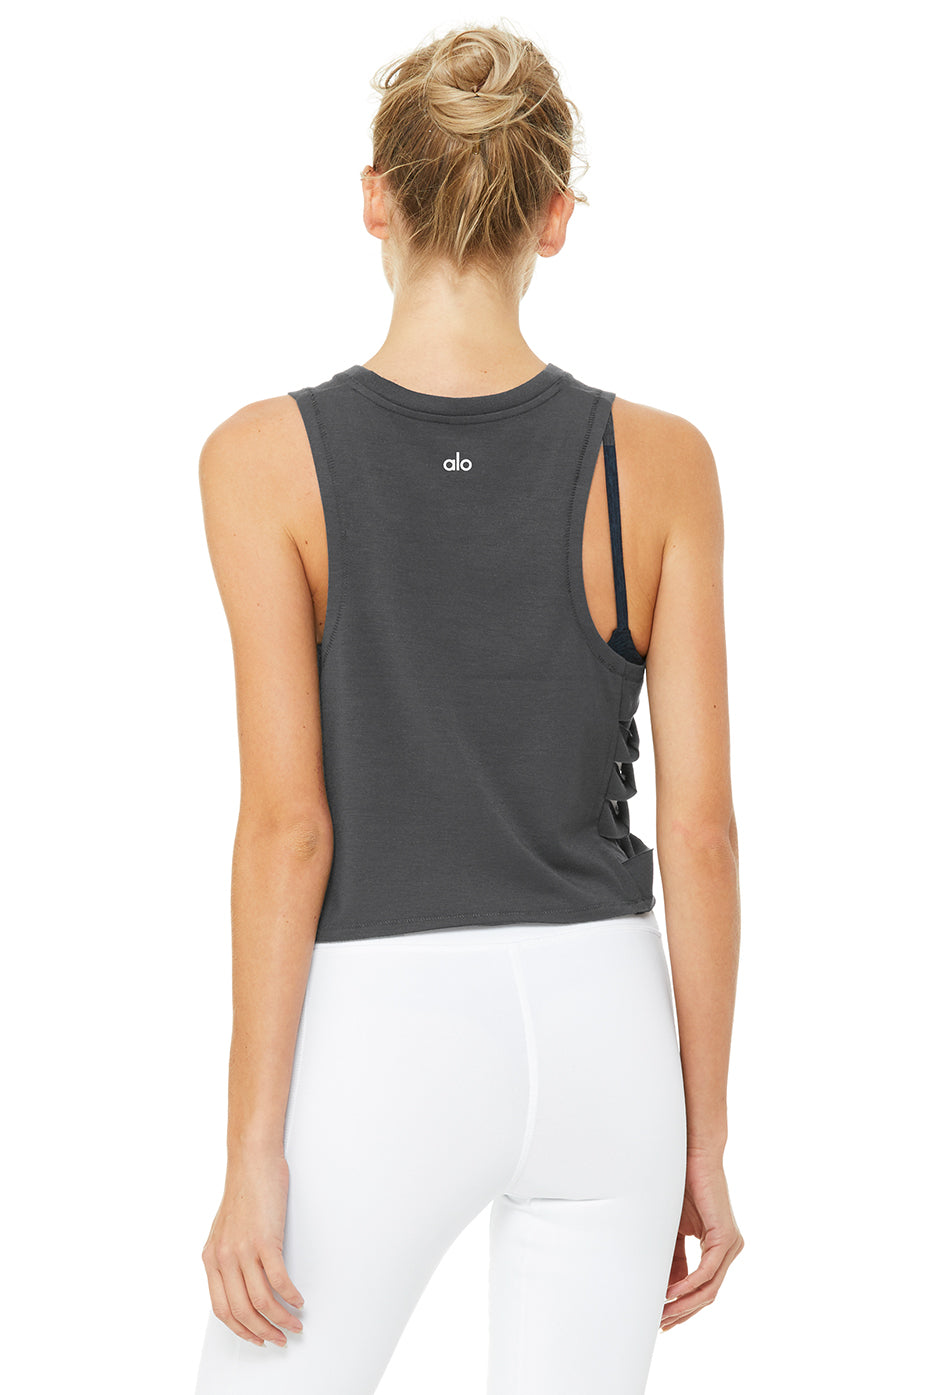 Cut It Out Cropped Tank